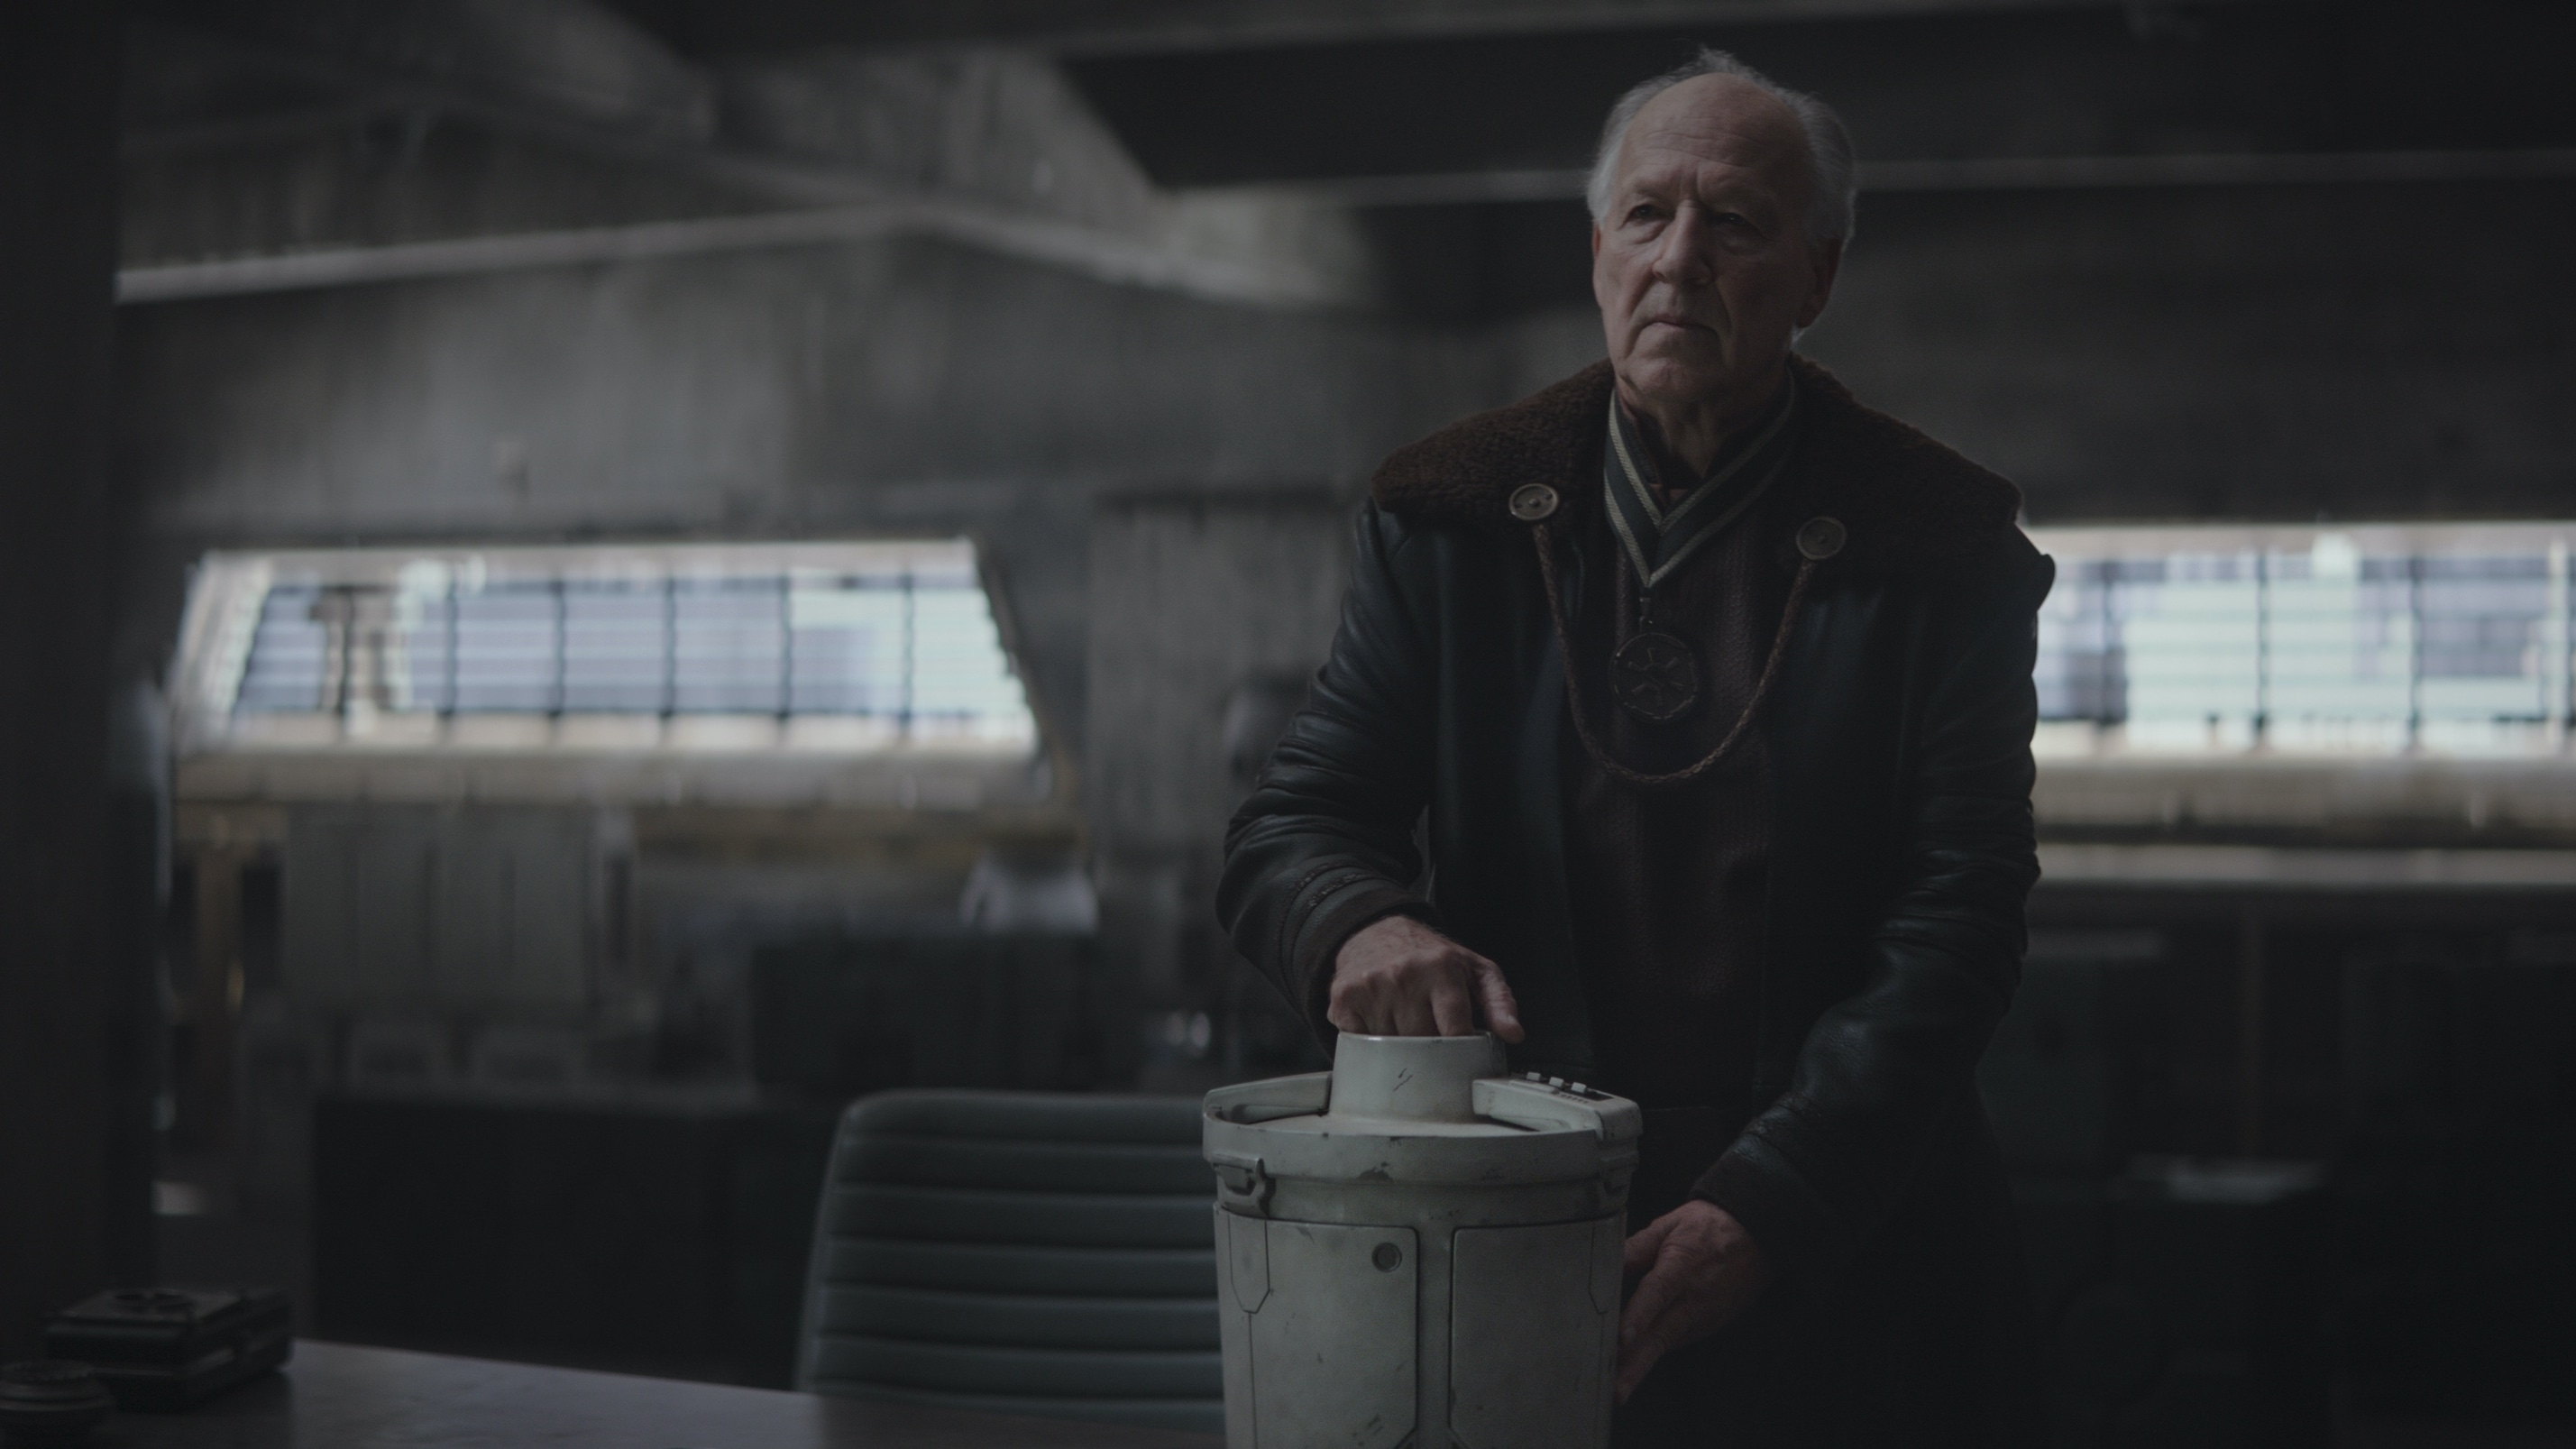 Chapter 3. Werner Herzog is the Client in THE MANDALORIAN, exclusively on Disney+.